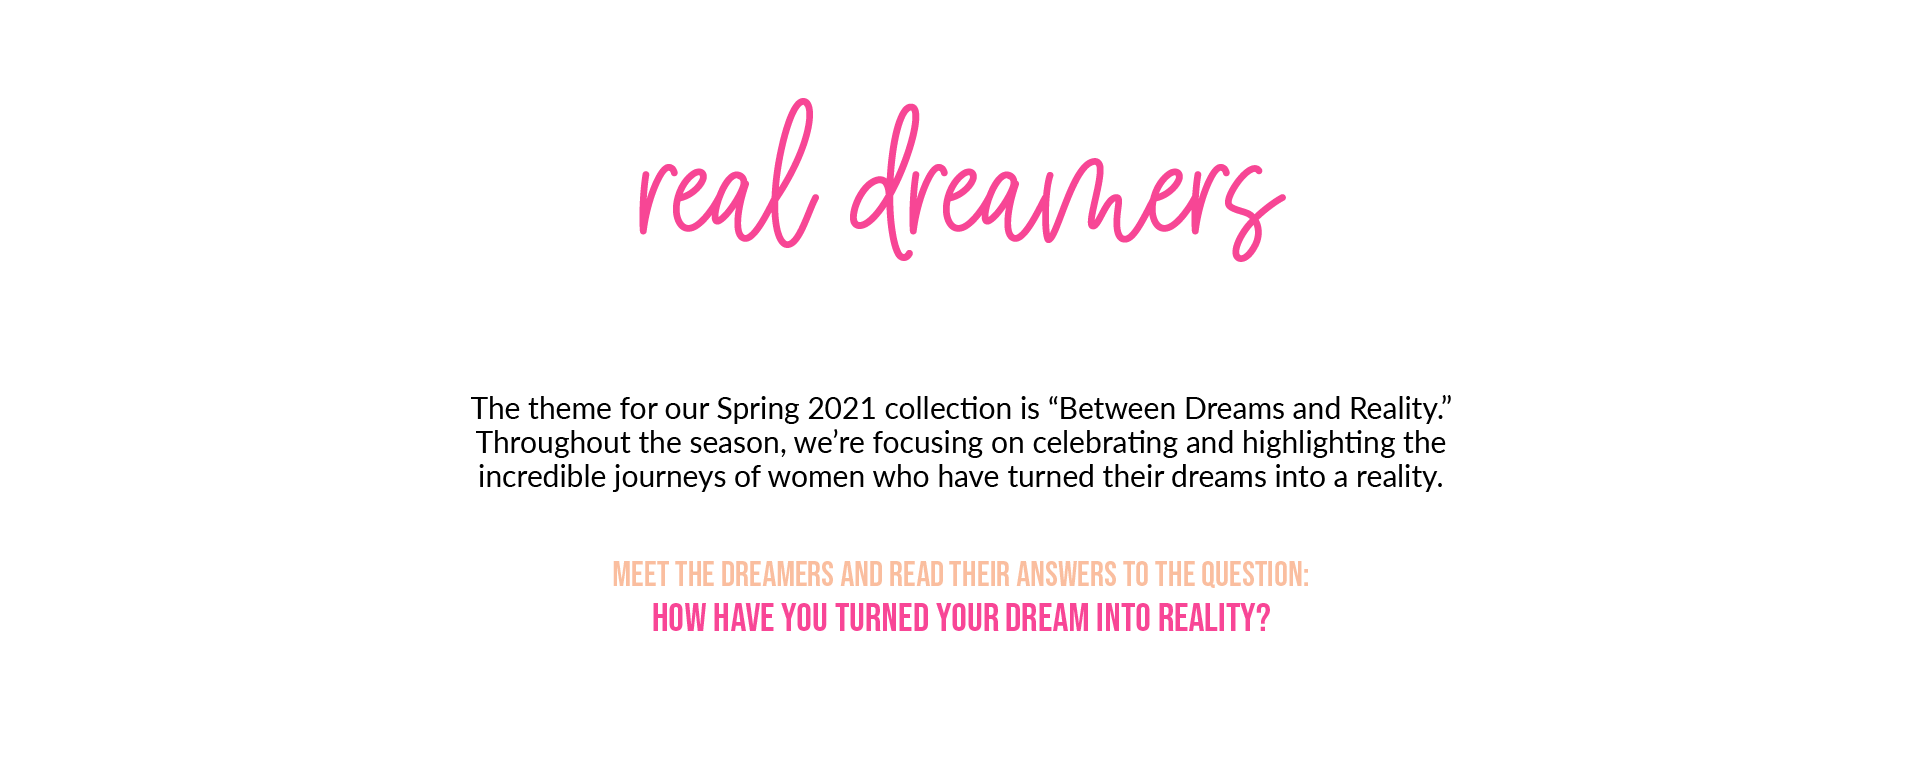 """Real DreamersThe theme for our Spring 2021 collection is """"Between Dreams and Reality."""" Throughout the season, we're focusing on celebrating and highlighting the incredible journeys of women who have turned their dreams into a reality. Meet the dreamers and read their answers to the question: How have you turned your dream into reality?"""